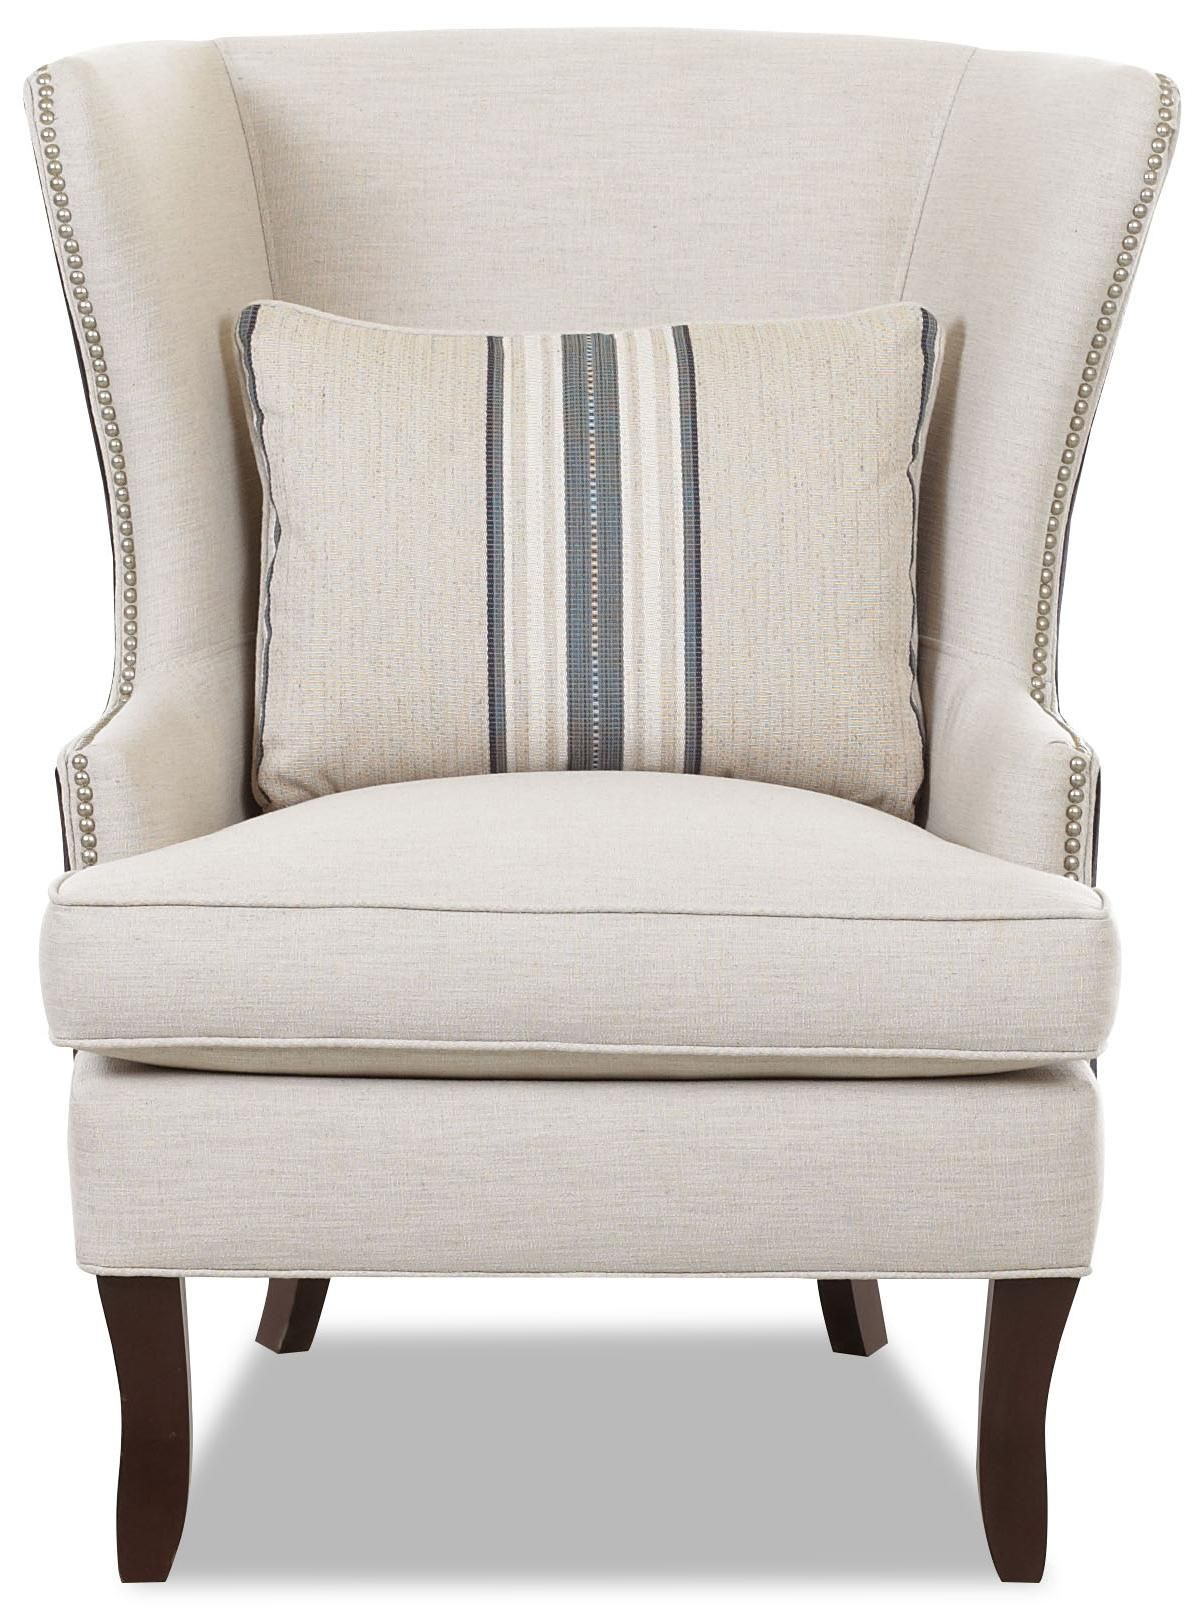 Chairs And Accents Transitional Krauss Wing Chair With Nail Head Trim By  Klaussner At Dunk U0026 Bright Furniture